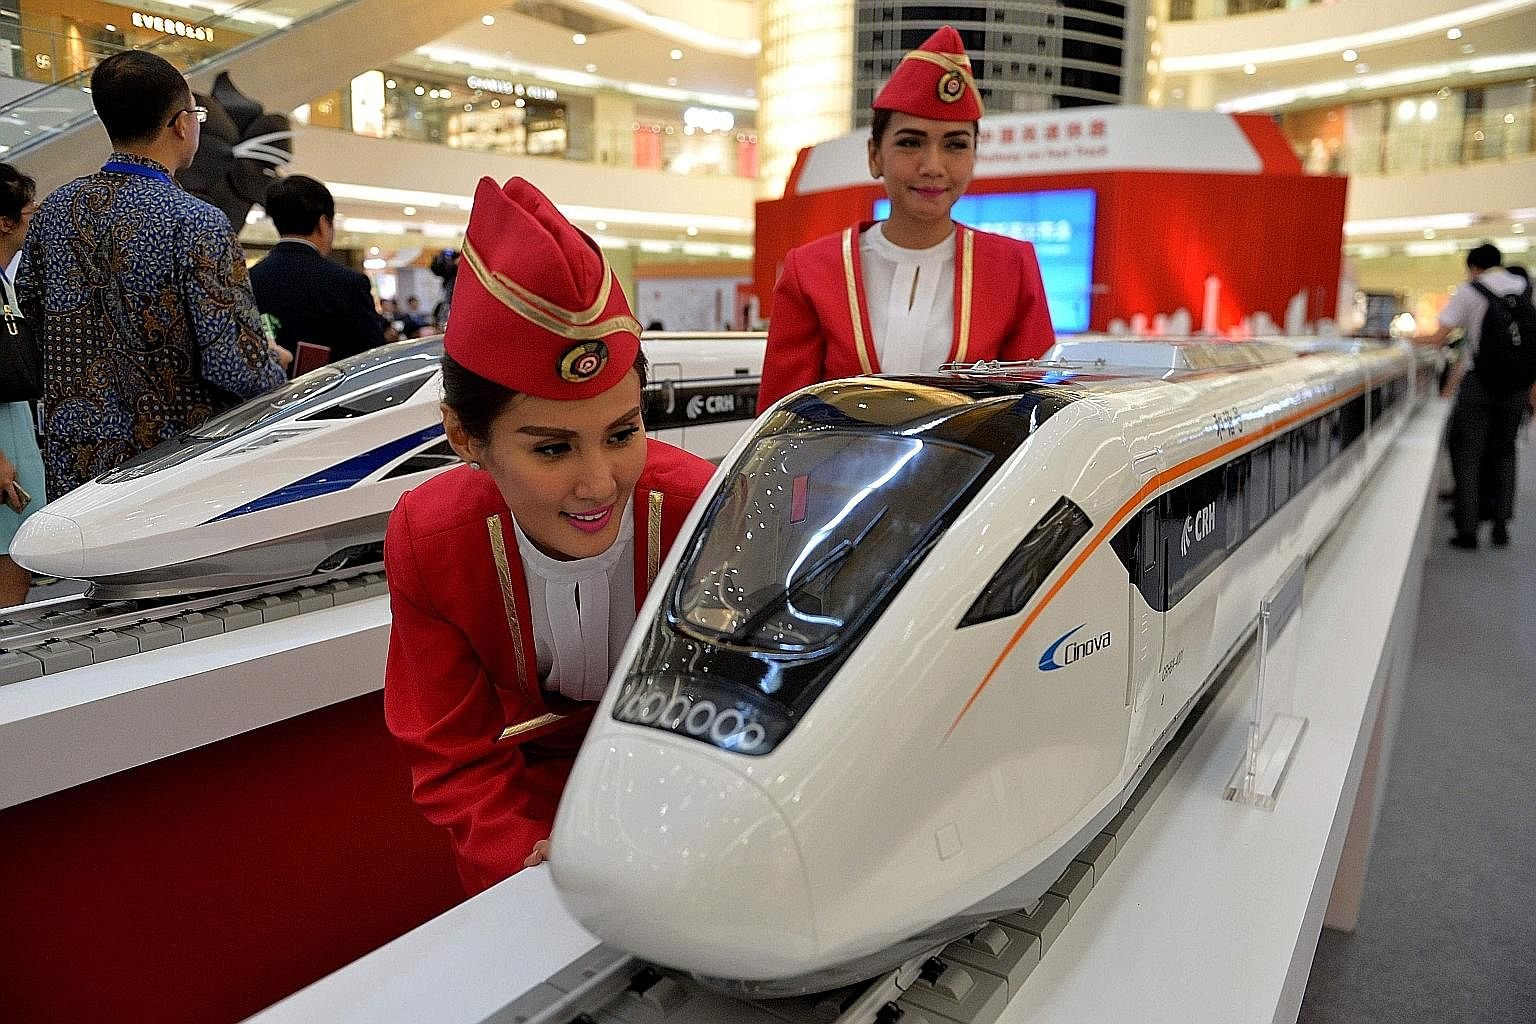 Scale models of bullet trains on display at a Jakarta mall. The buoyant investment climate has supported the economy as President Joko Widodo pushed to build more infrastructure across the country.